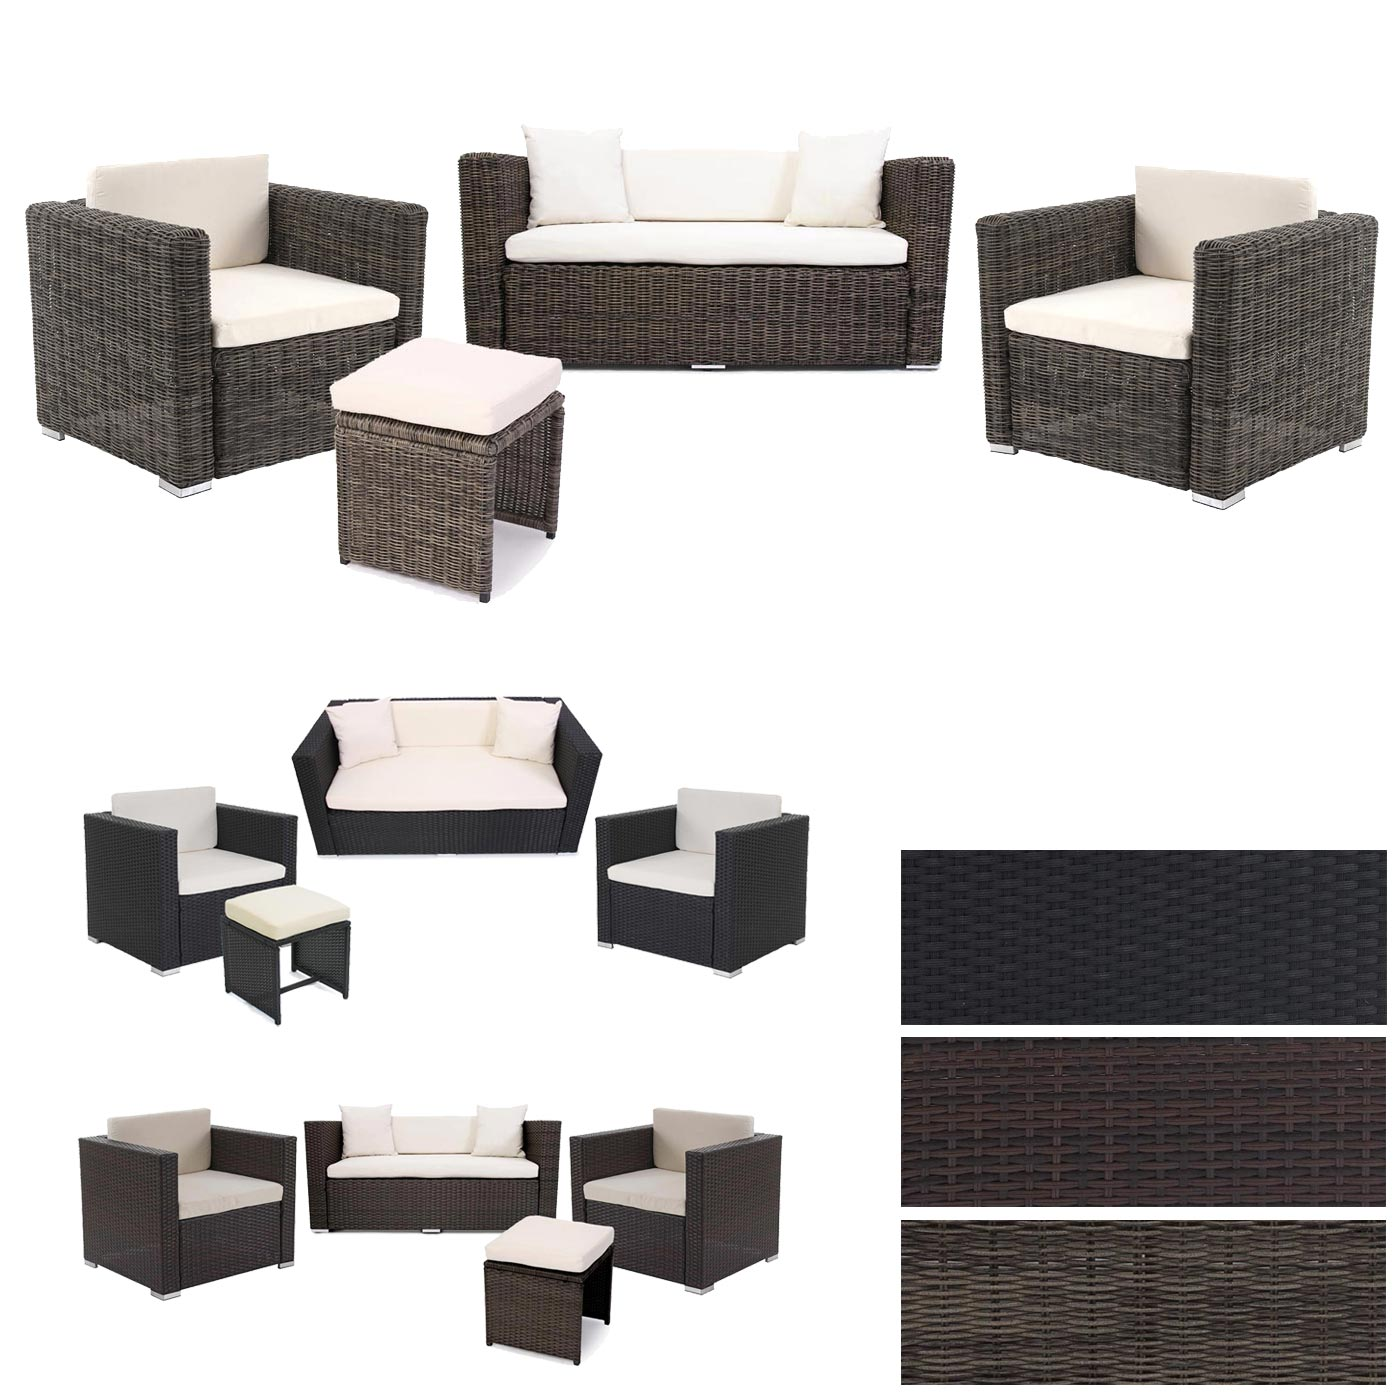 Poly-rattan Sofa-garnitur Rom Basic Poly Rattan Alu Sofa Garnitur Rom Basic Gartengarnitur